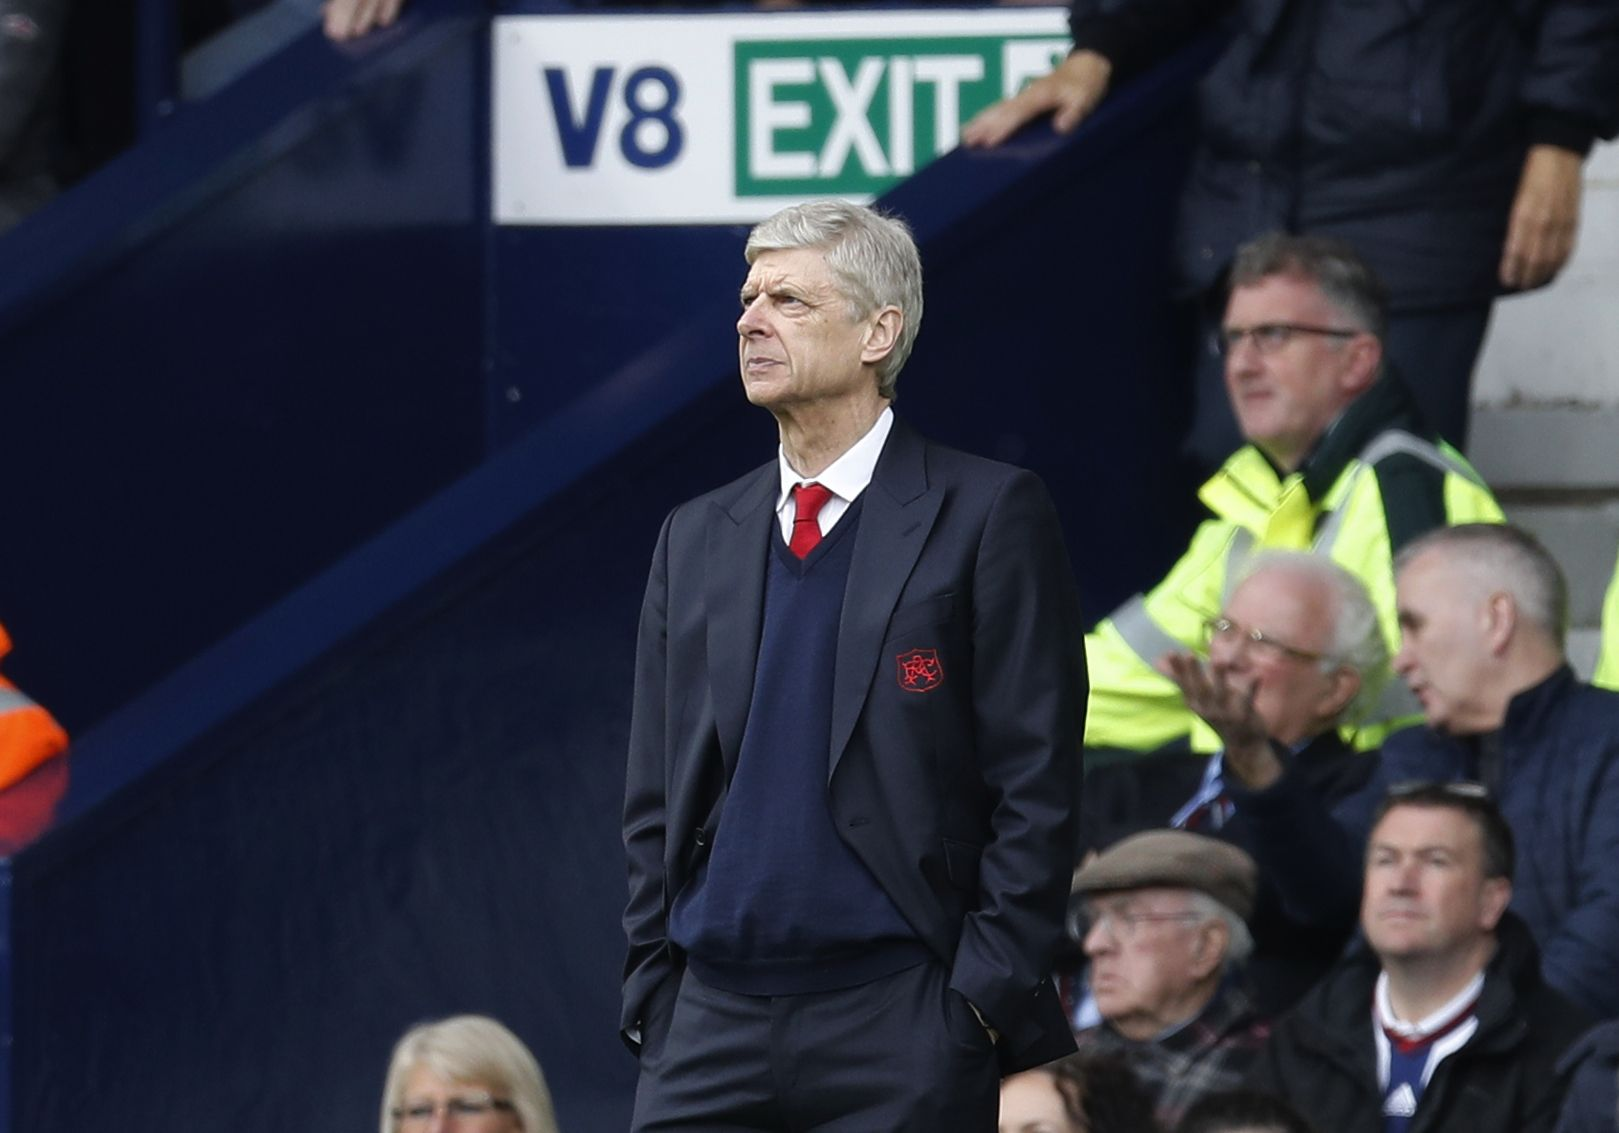 Arsene Wenger S Biographer Reflects On The Man He Knew And How Arsenal Has Changed